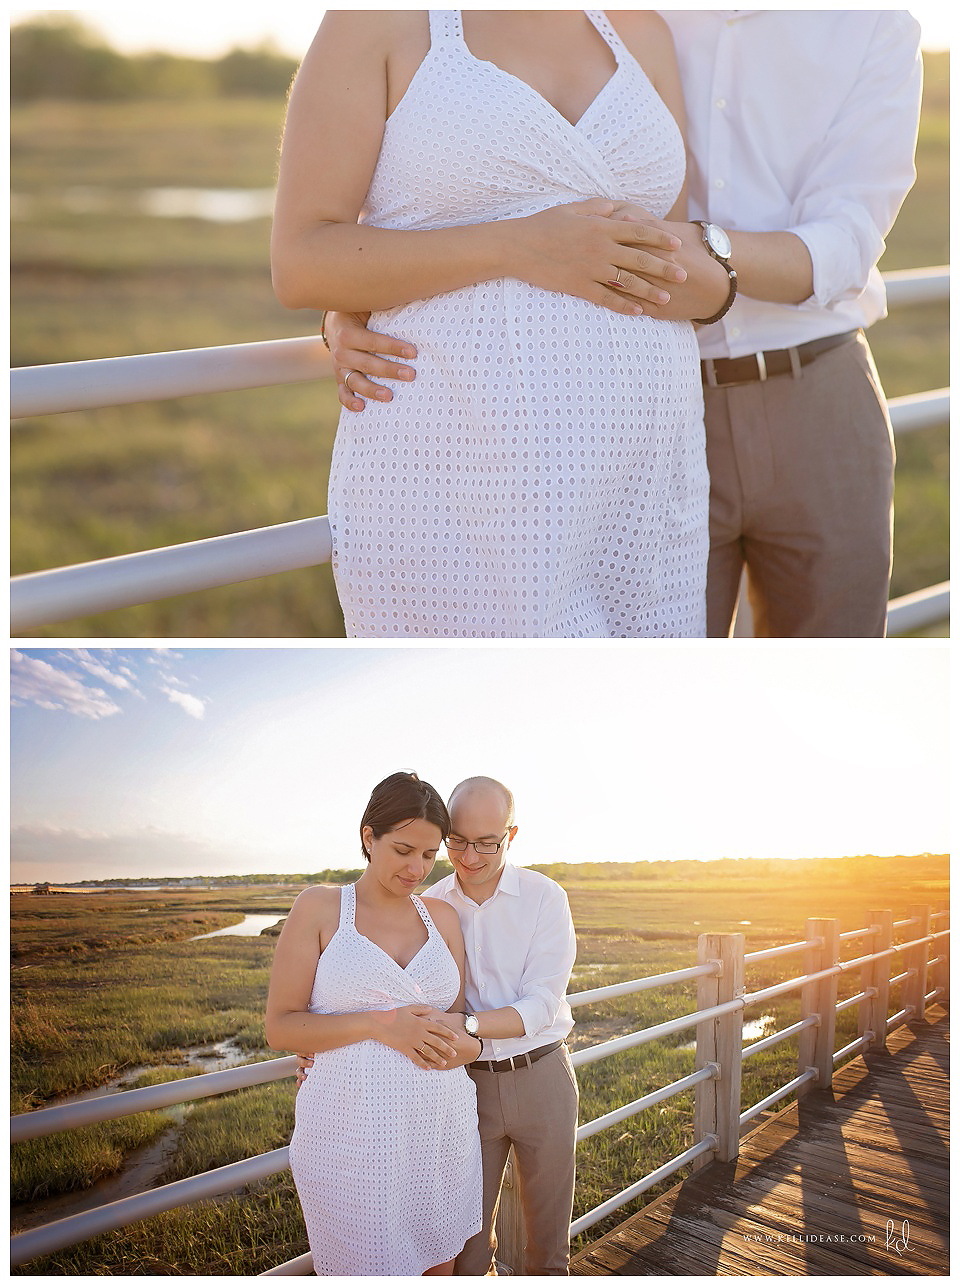 Milford, CT Photography | CT Maternity Photographer | MA Maternity Photography | Maternity Beach Session | Silver Sands State Park Beach Photography | CT Family Maternity Photographer